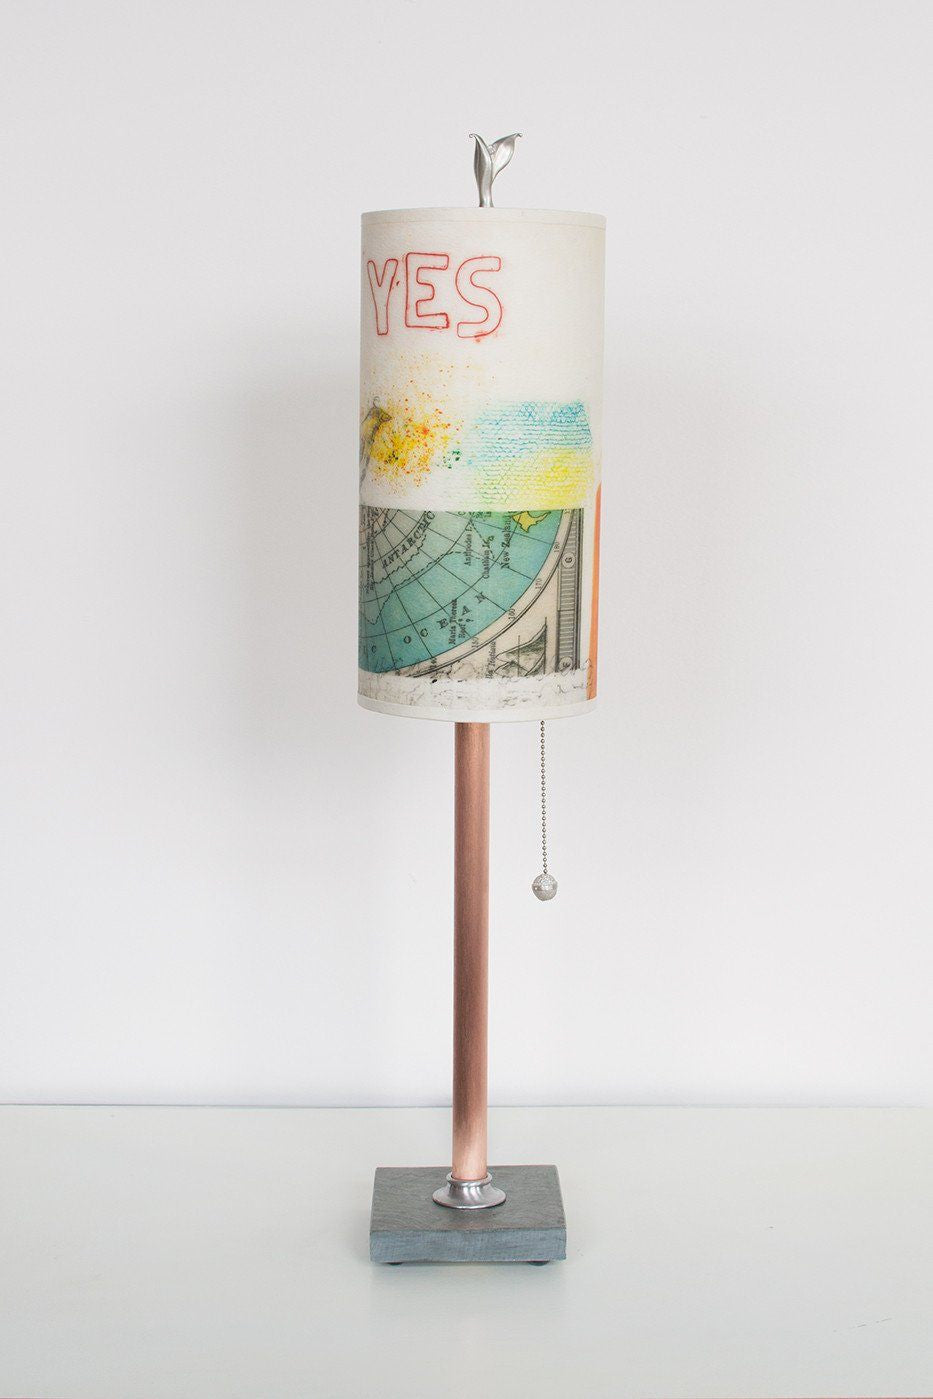 Copper Table Lamp on Vermont Slate with Small Tube Shade in Mix